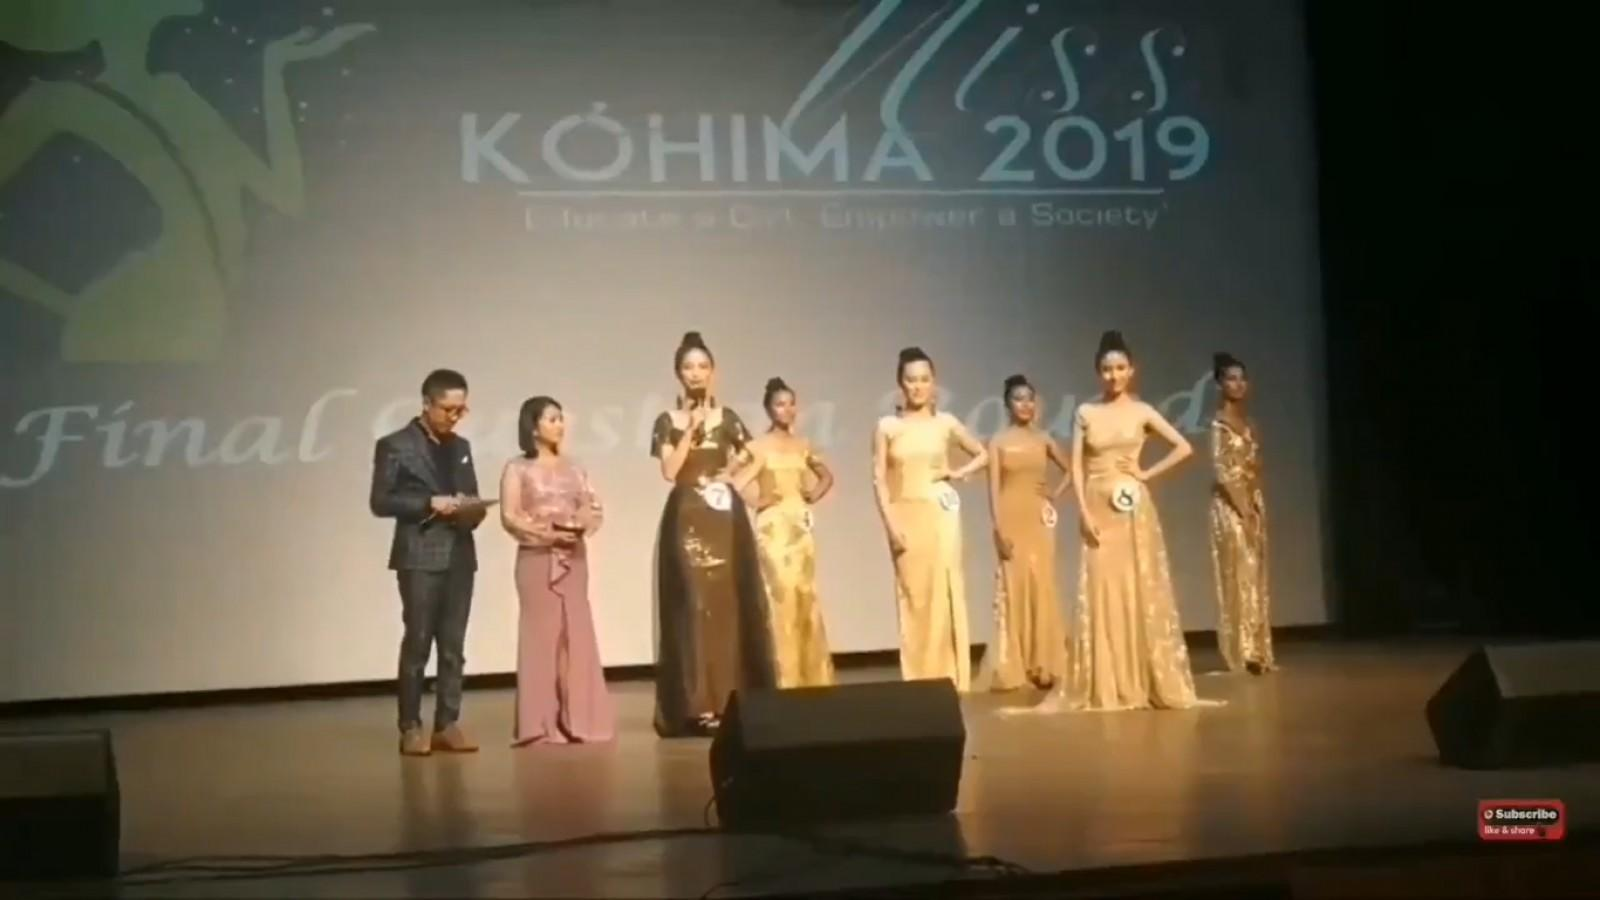 watch-miss-kohima-2019-wows-audience-with-witty-answer-to-judges-question